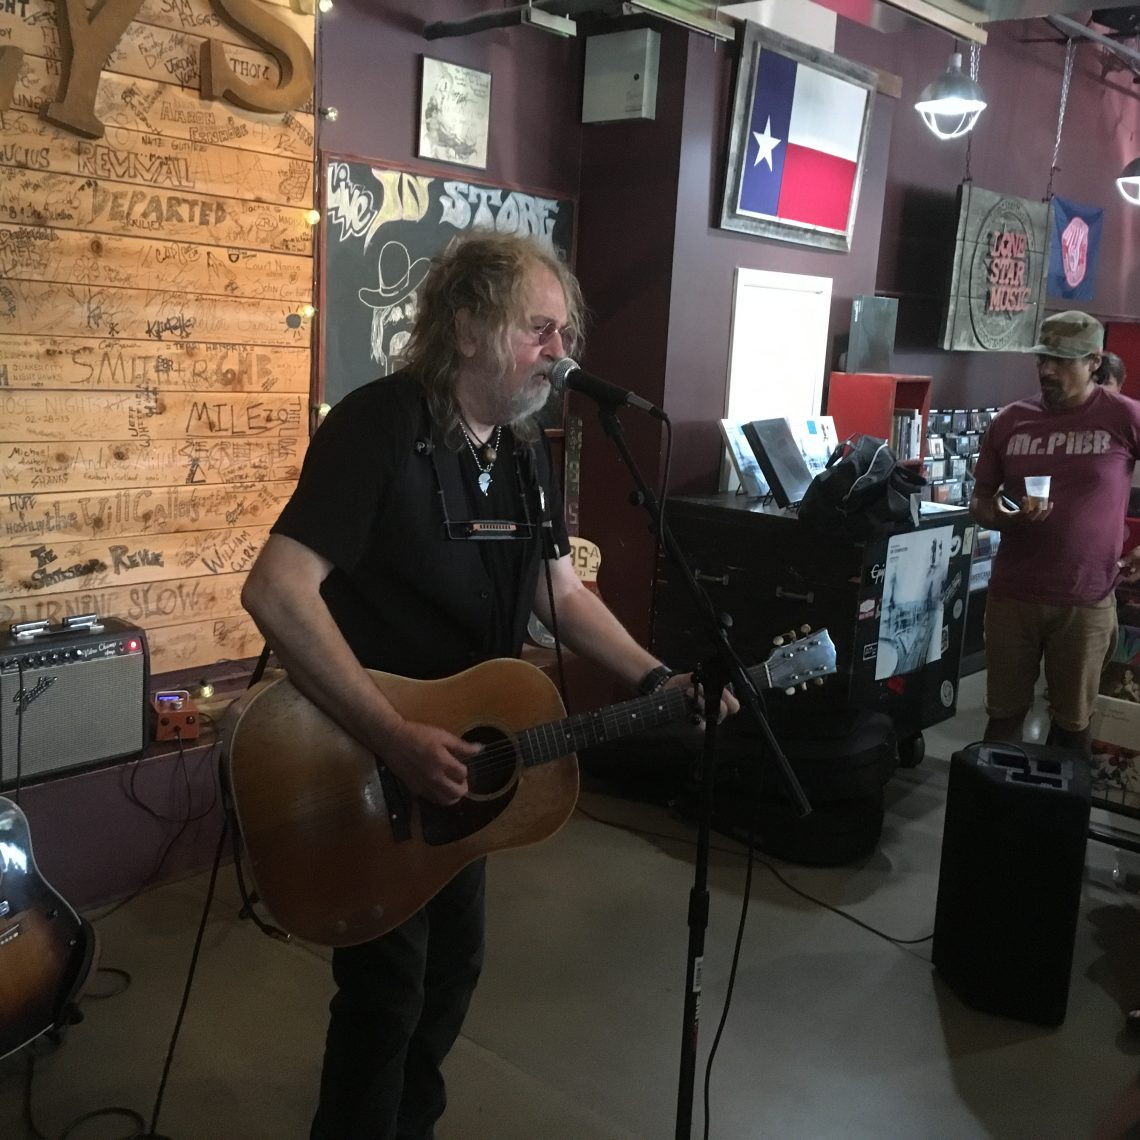 Ray Wylie Hubbard at Superfly's Lone Star Music Emporium on Aug. 14, 2017. (Photo by Richard Skanse)